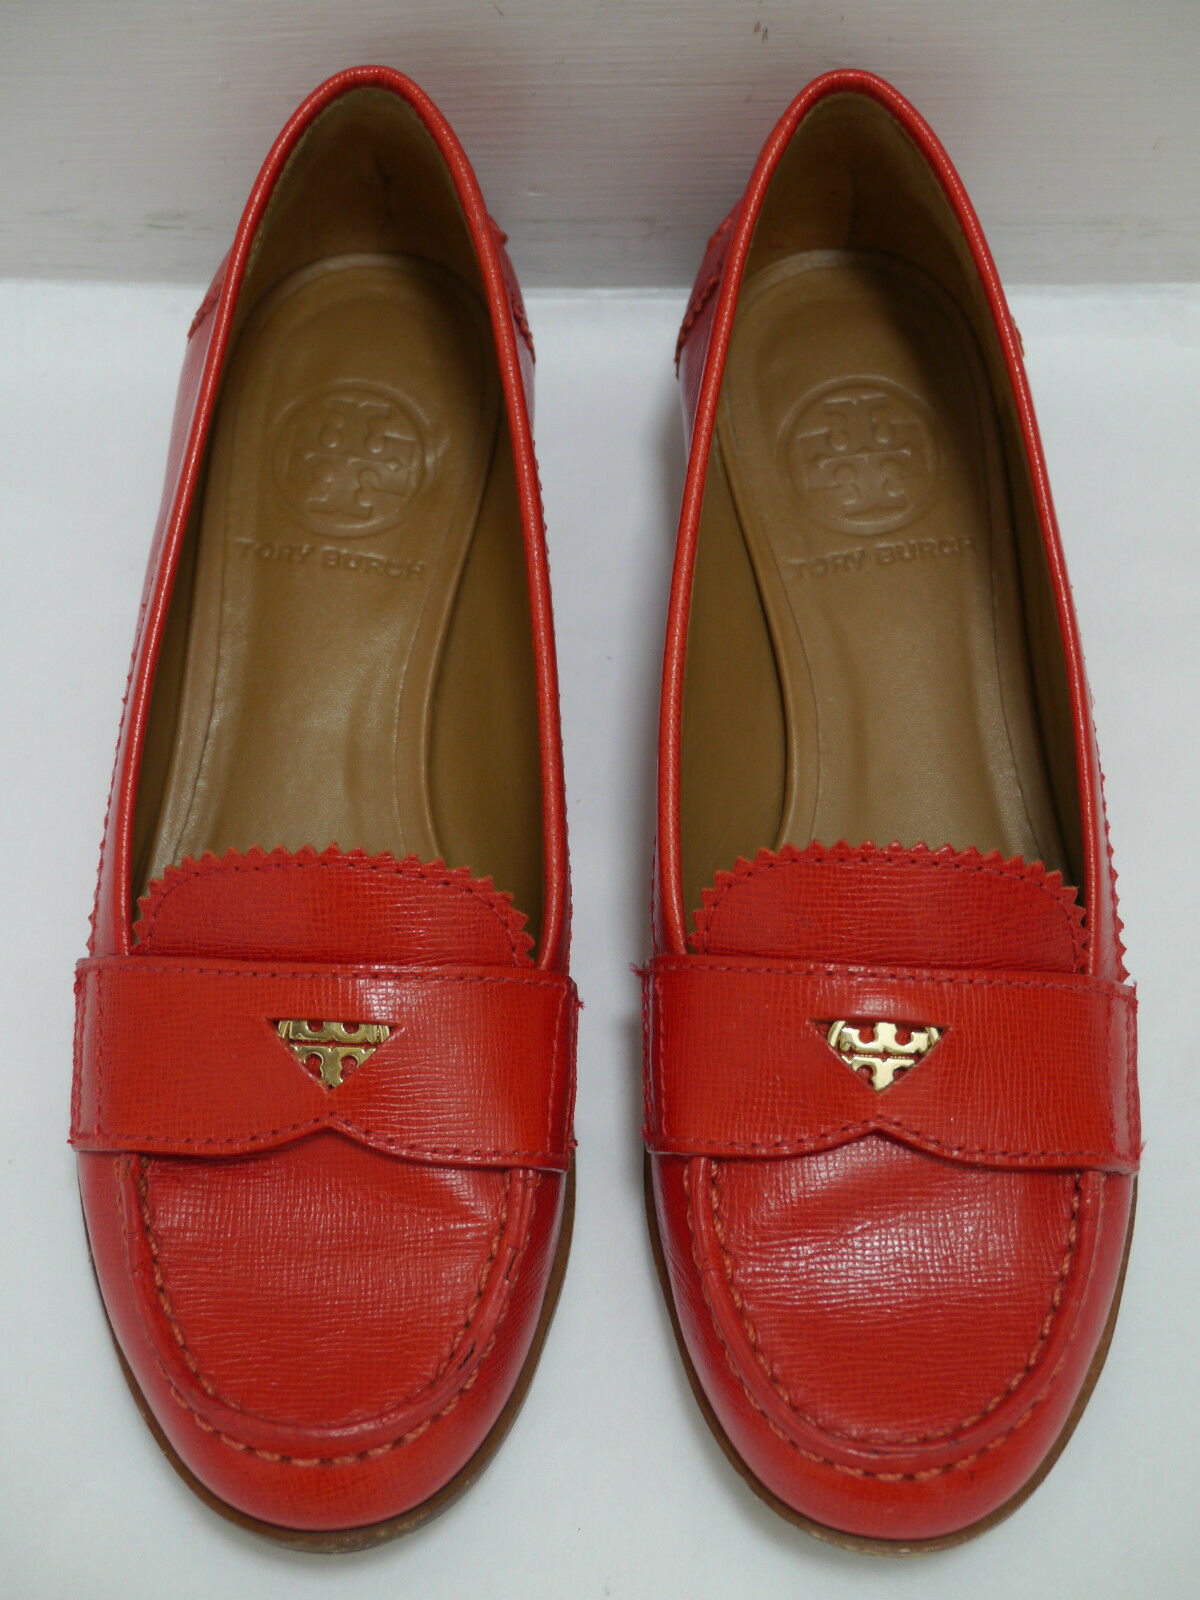 TORY BURCH $250 Pennie Penny Loafer Loafer Penny red saffiano leather shoes size 5.5 1c870b